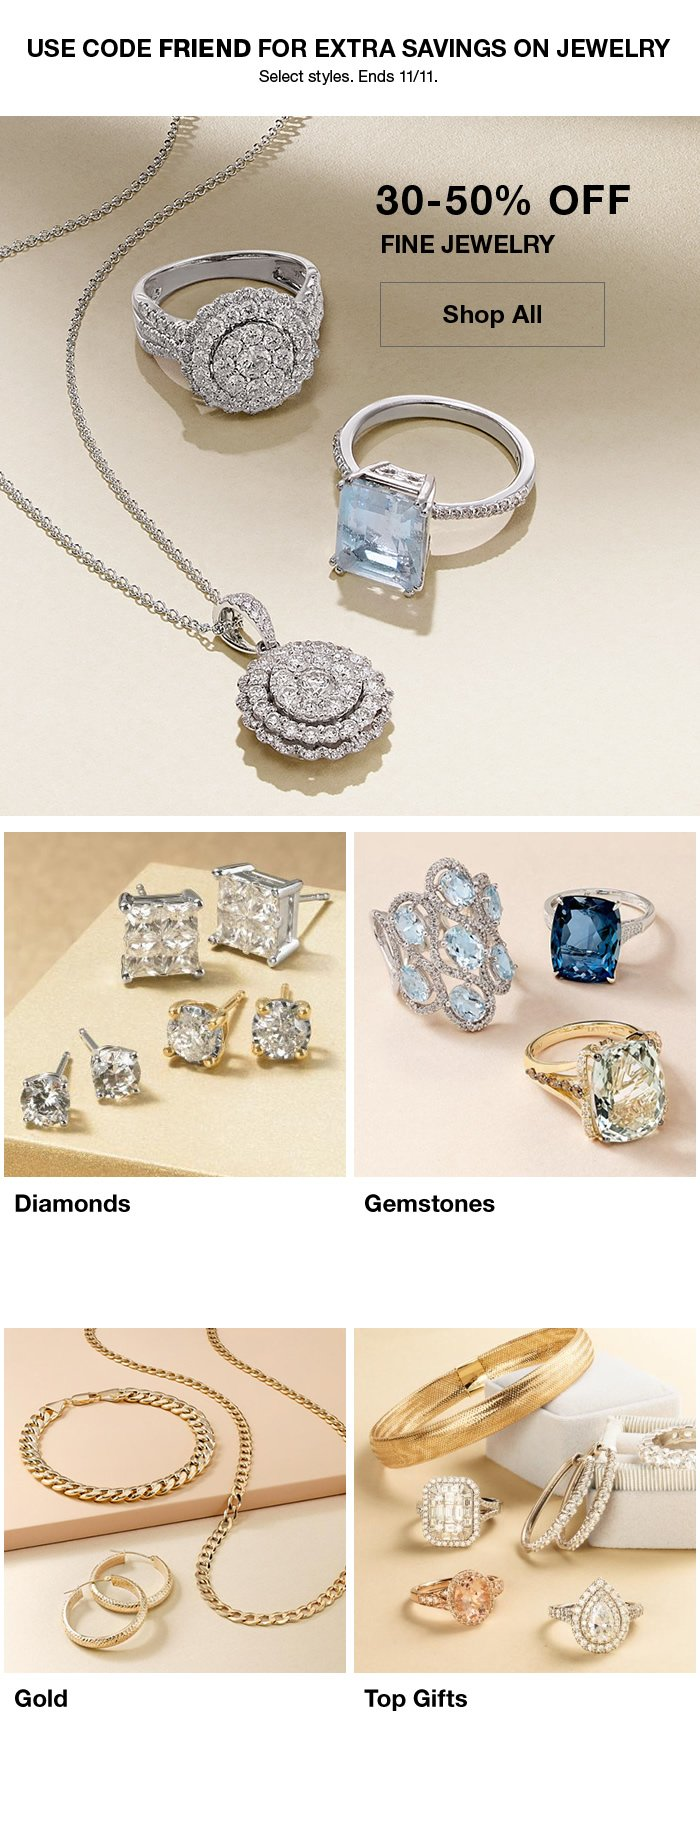 Use Code FRIEND for Extra Savings, 30-50 percent off Fine Jewelry Shop All, Diamonds, Gemstones, Gold, Top Gifts